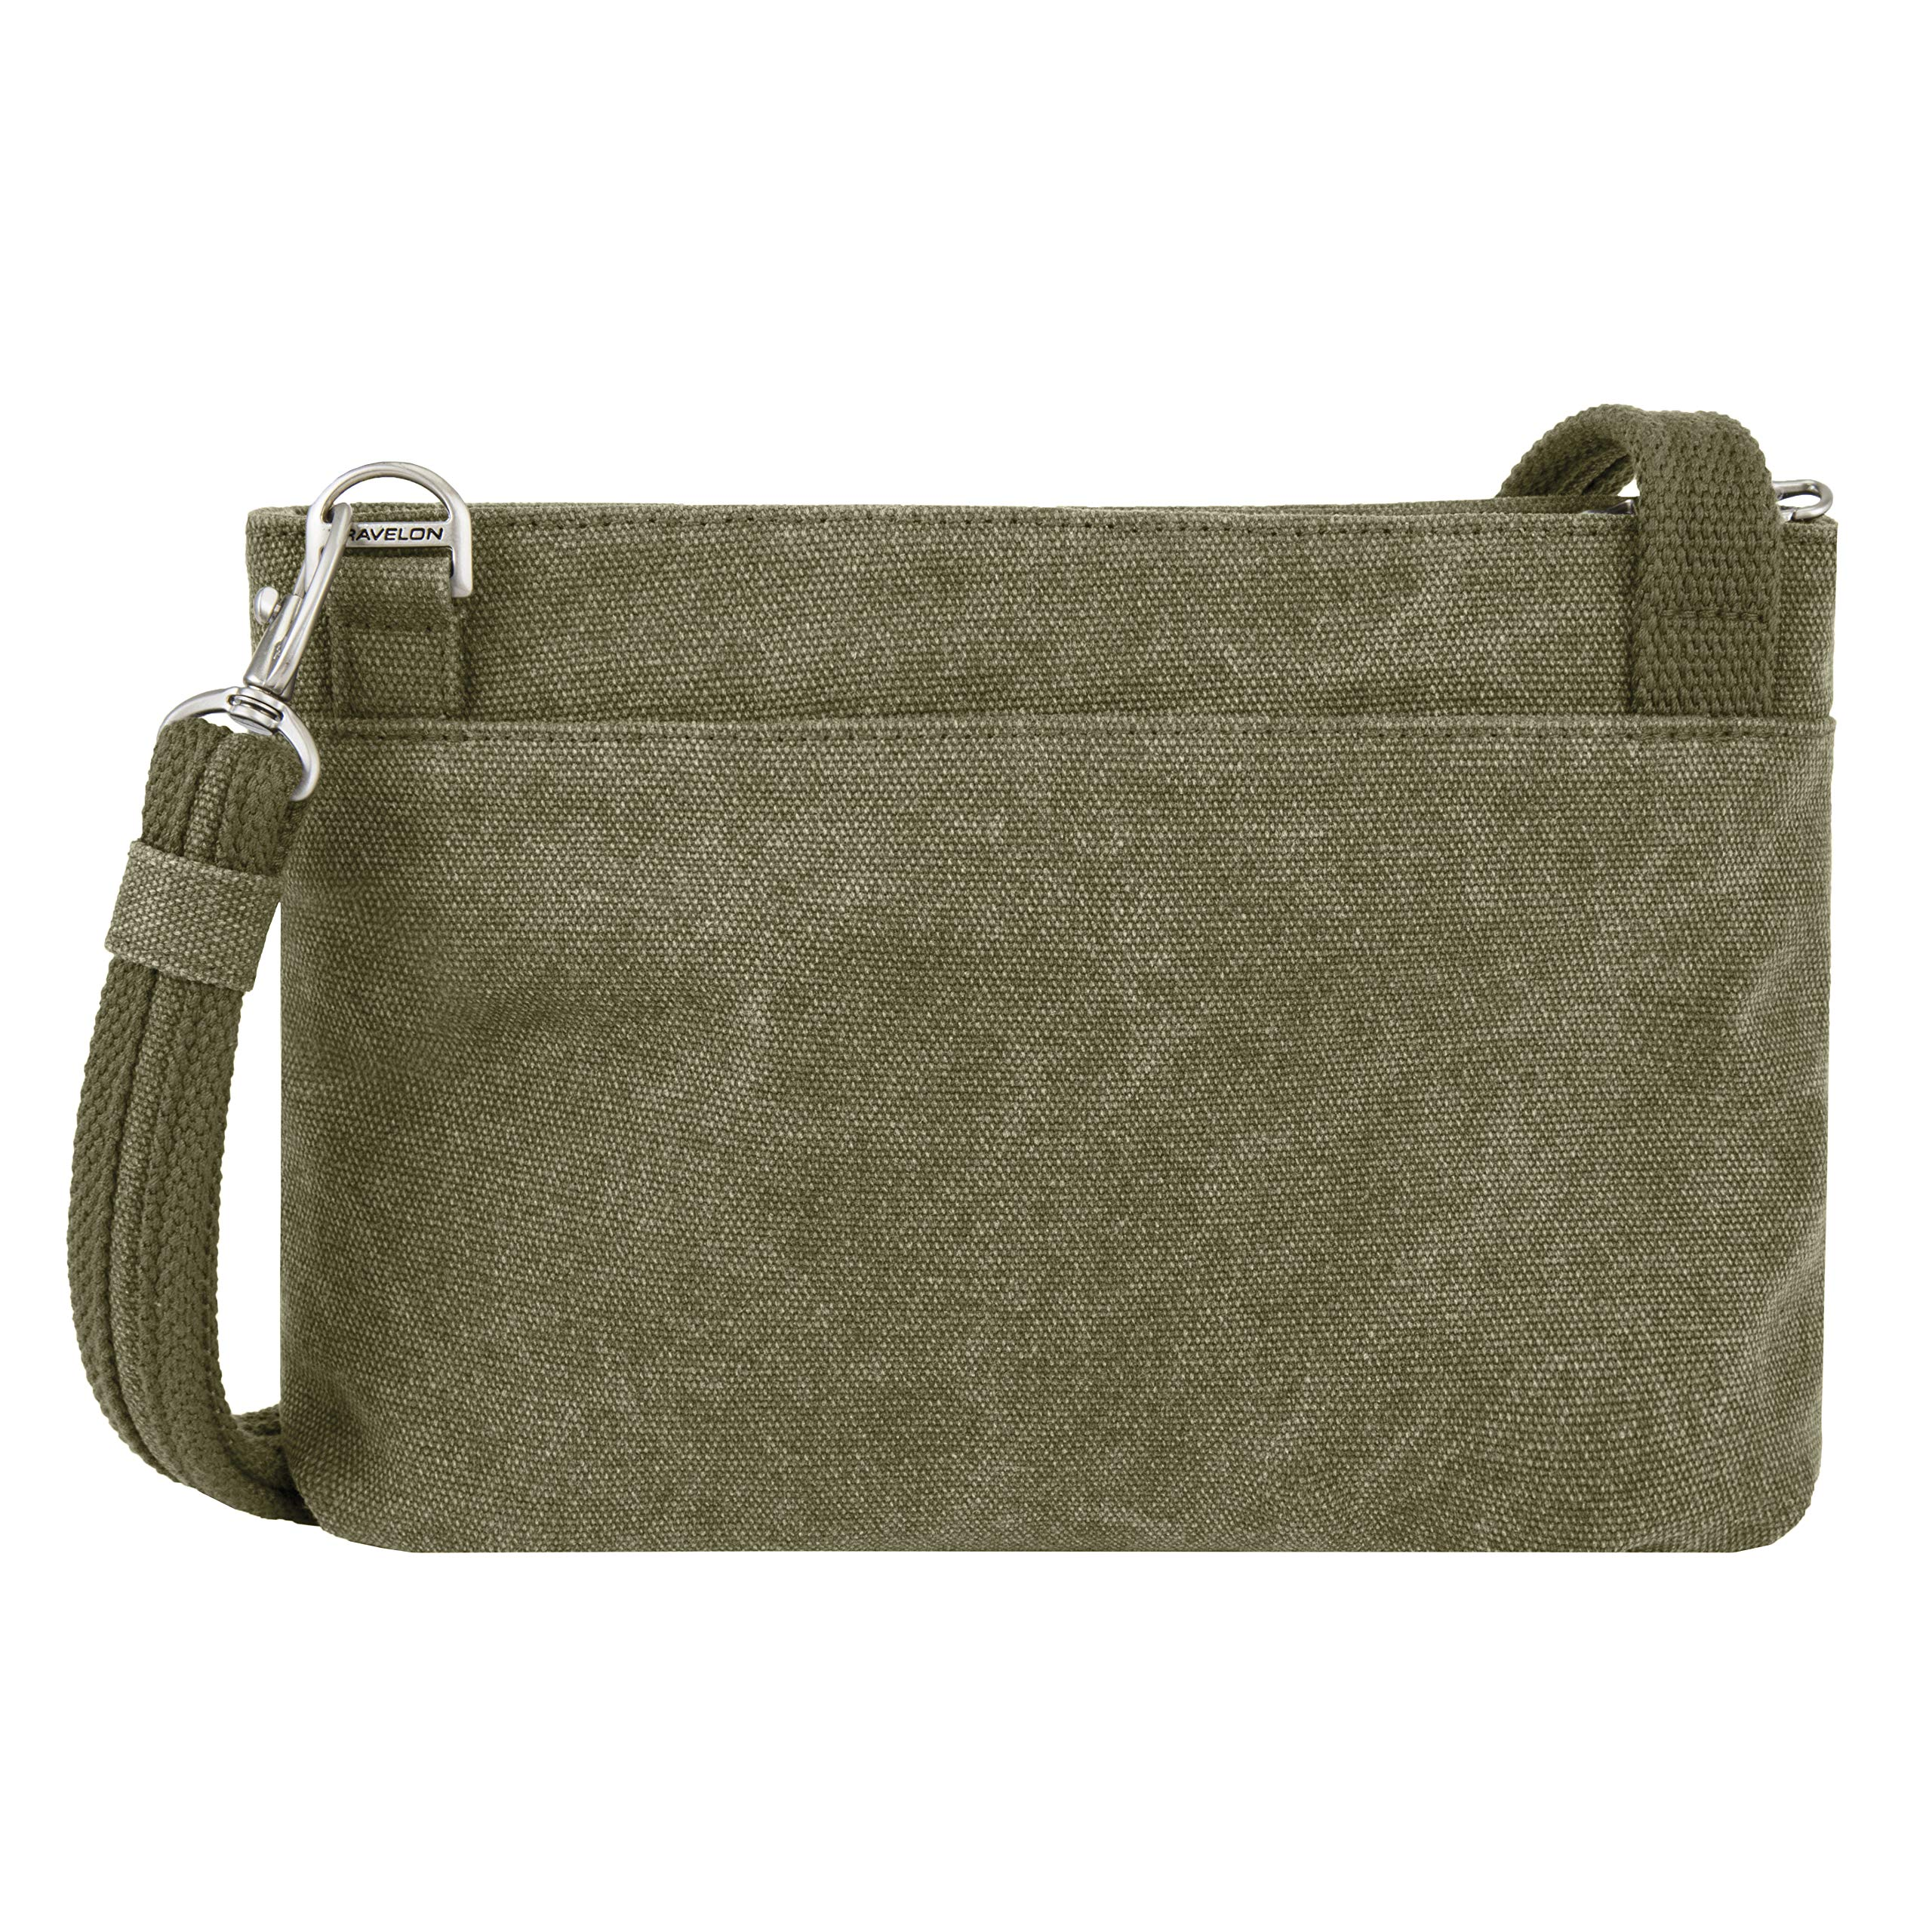 Travelon Anti-Theft Heritage Cross Body Bag, Sage, One Size by Travelon (Image #7)